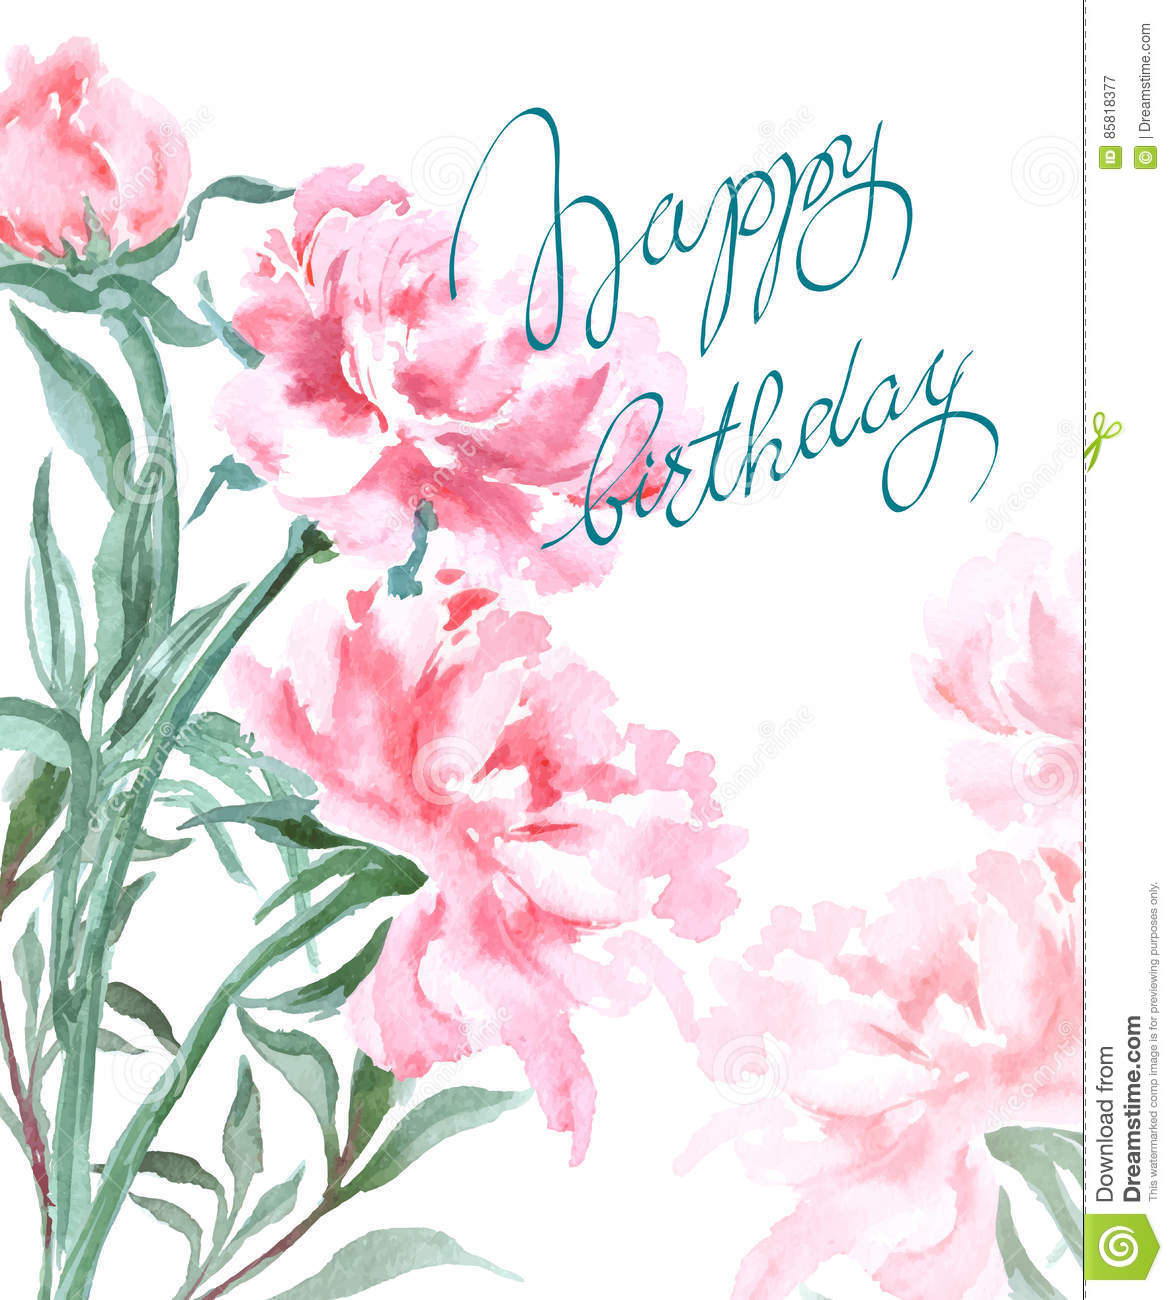 Birthday Card Watercolor Flowers Peonies Handmade Greeting Cards Spring Composition